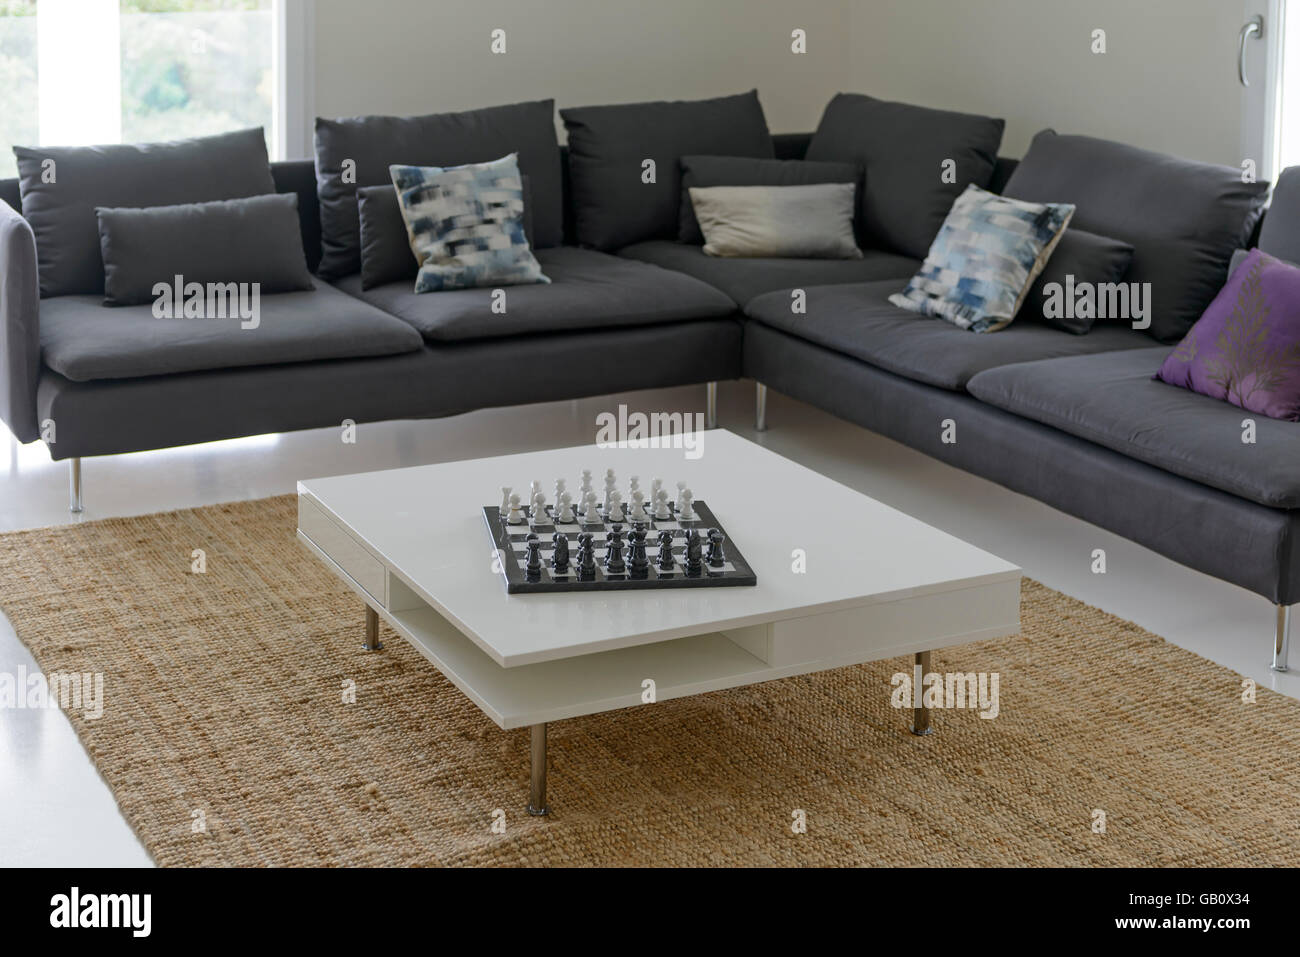 L Shaped Sofa Stockfotos Und Bilder Kaufen Alamy